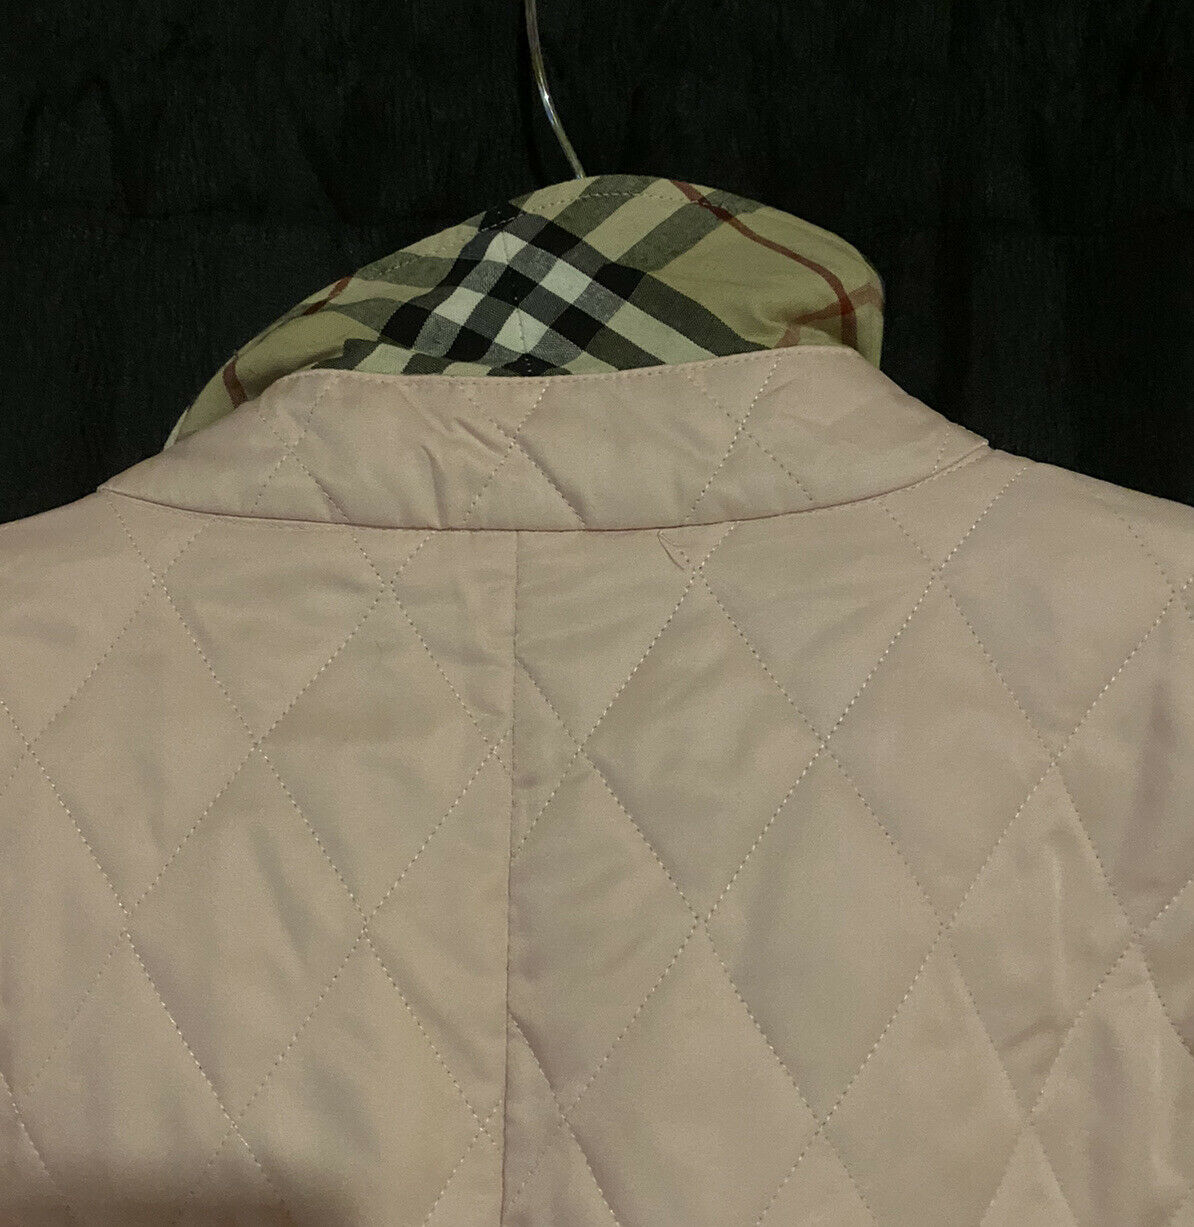 burberry quilted jacket medium - image 9